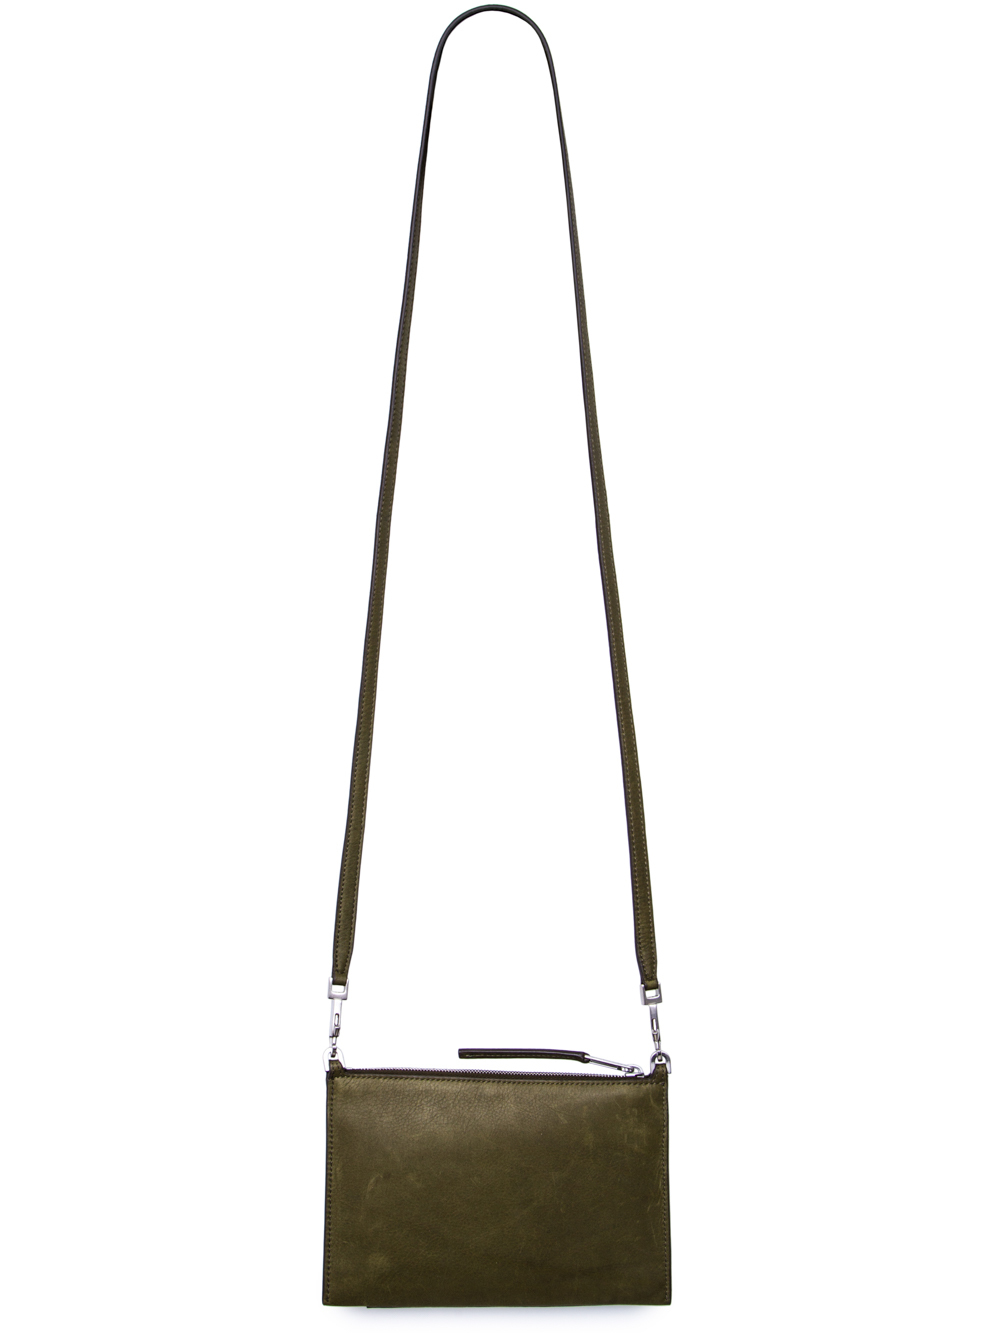 RICK OWENS FW18 SISYPHUS CLUB POUCH IN DIRTY GREEN CALF LEATHER